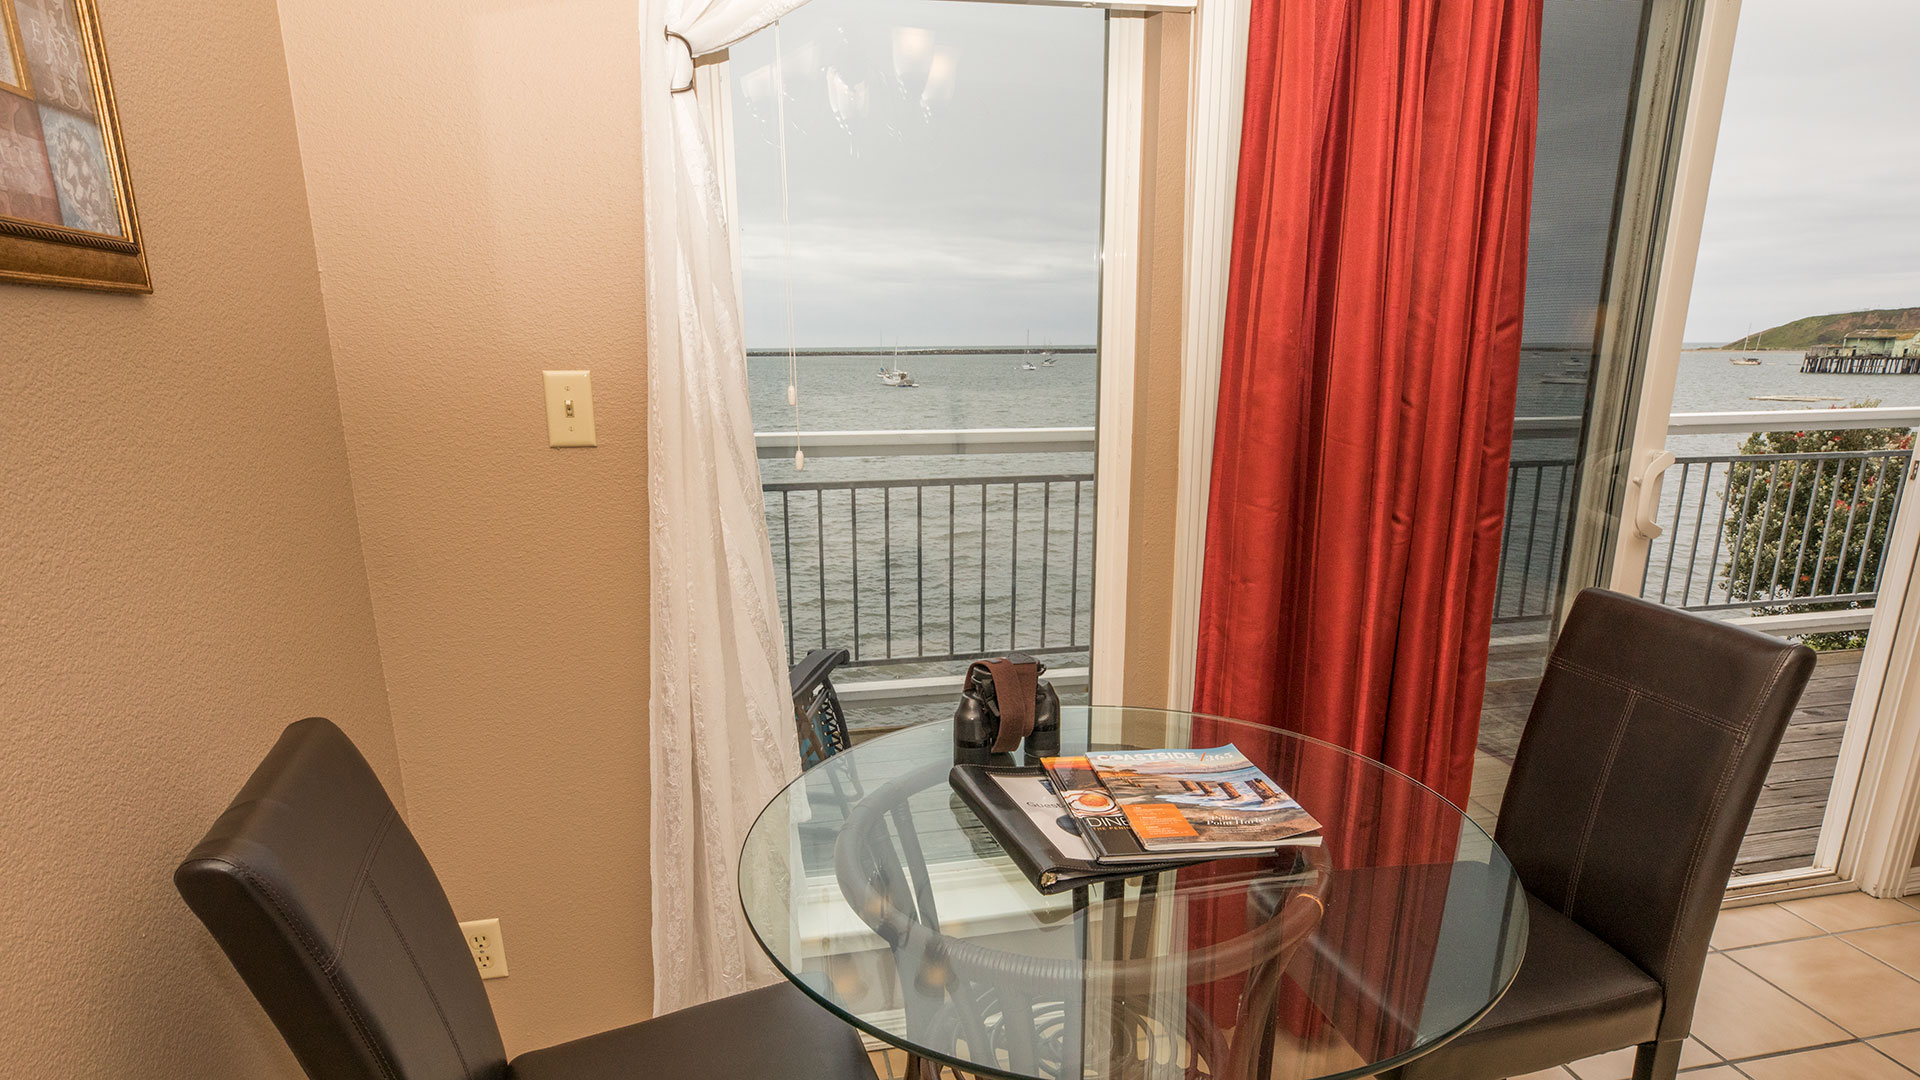 Ross Cove Room Dining Table Looking Out To Bay